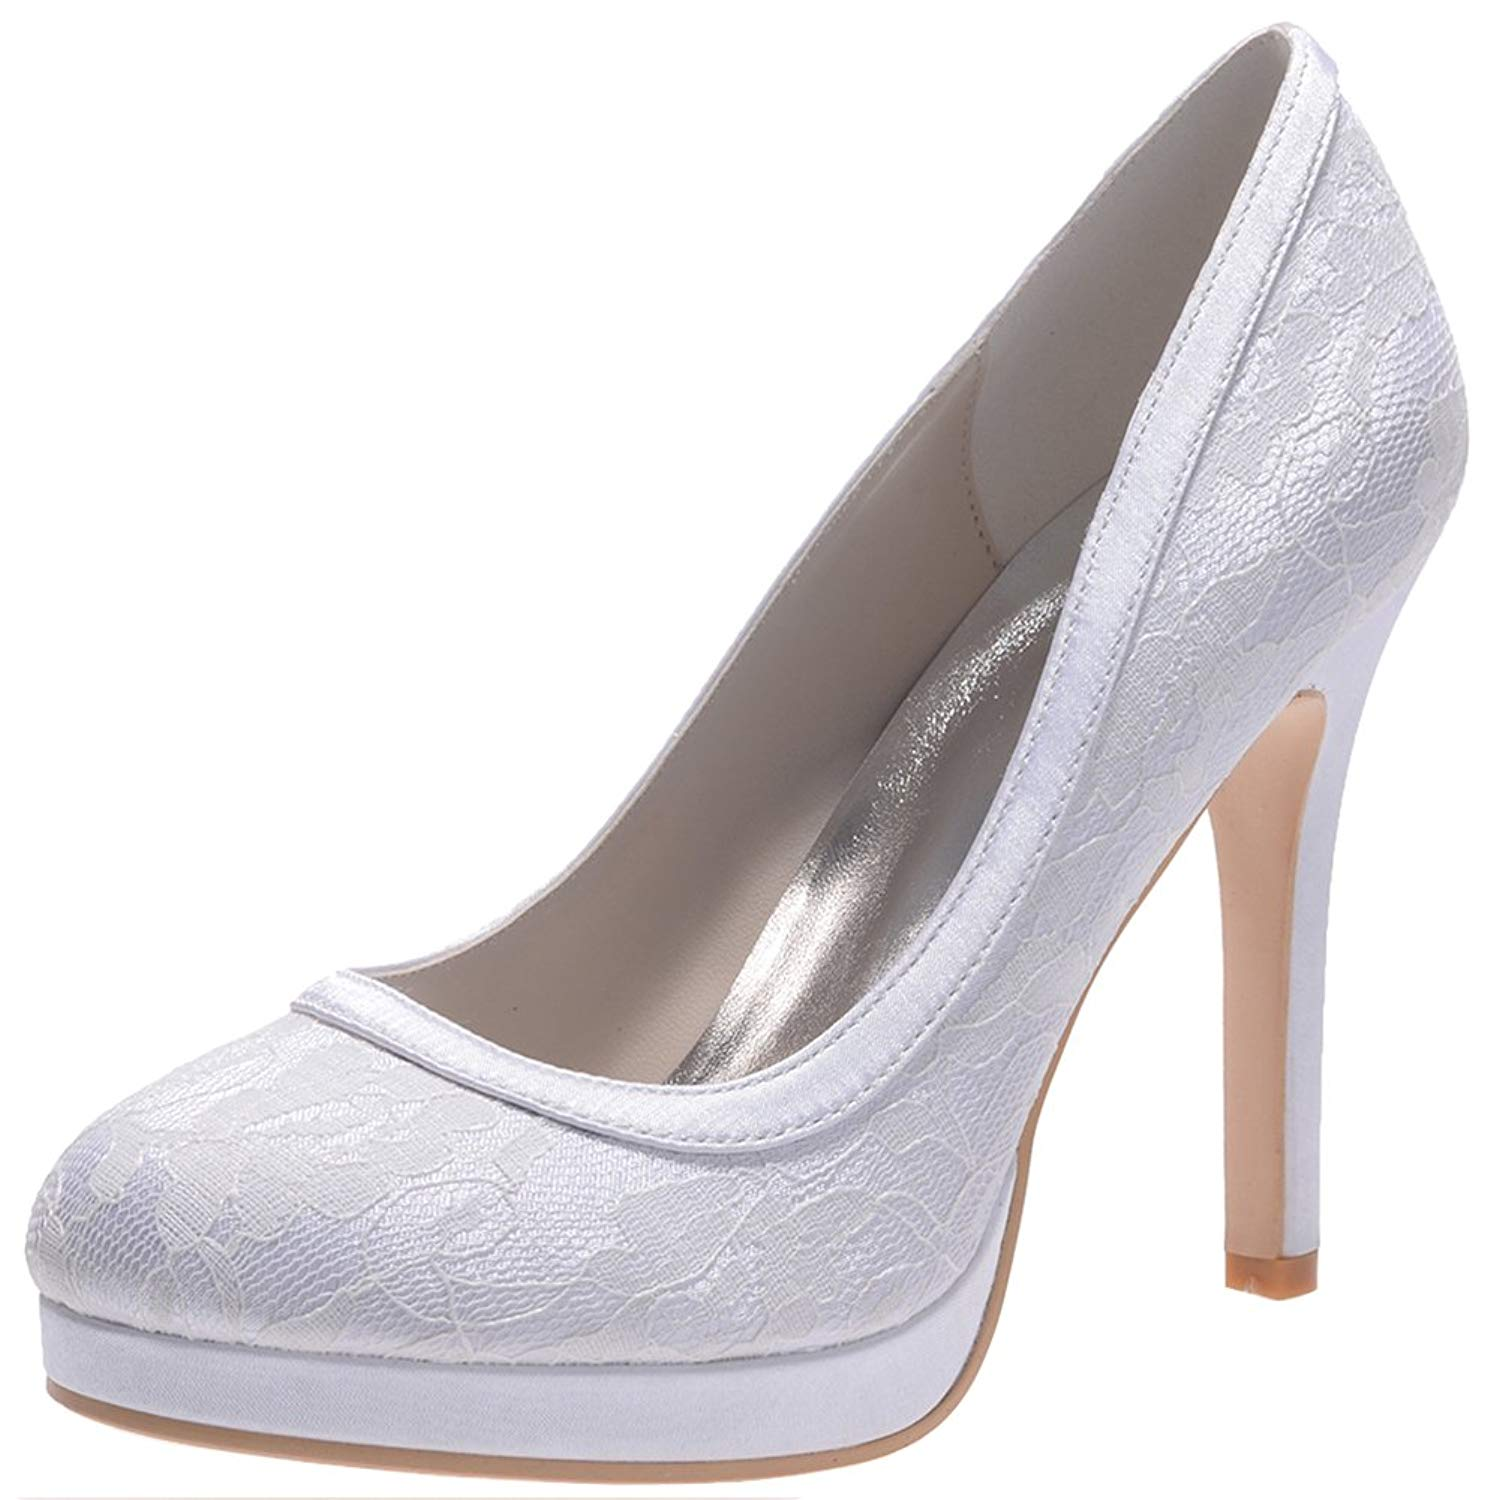 LOSLANDIFEN Women's Round Toe Lace Flower Pumps Platform High Heel Party Wedding Bridal Shoes